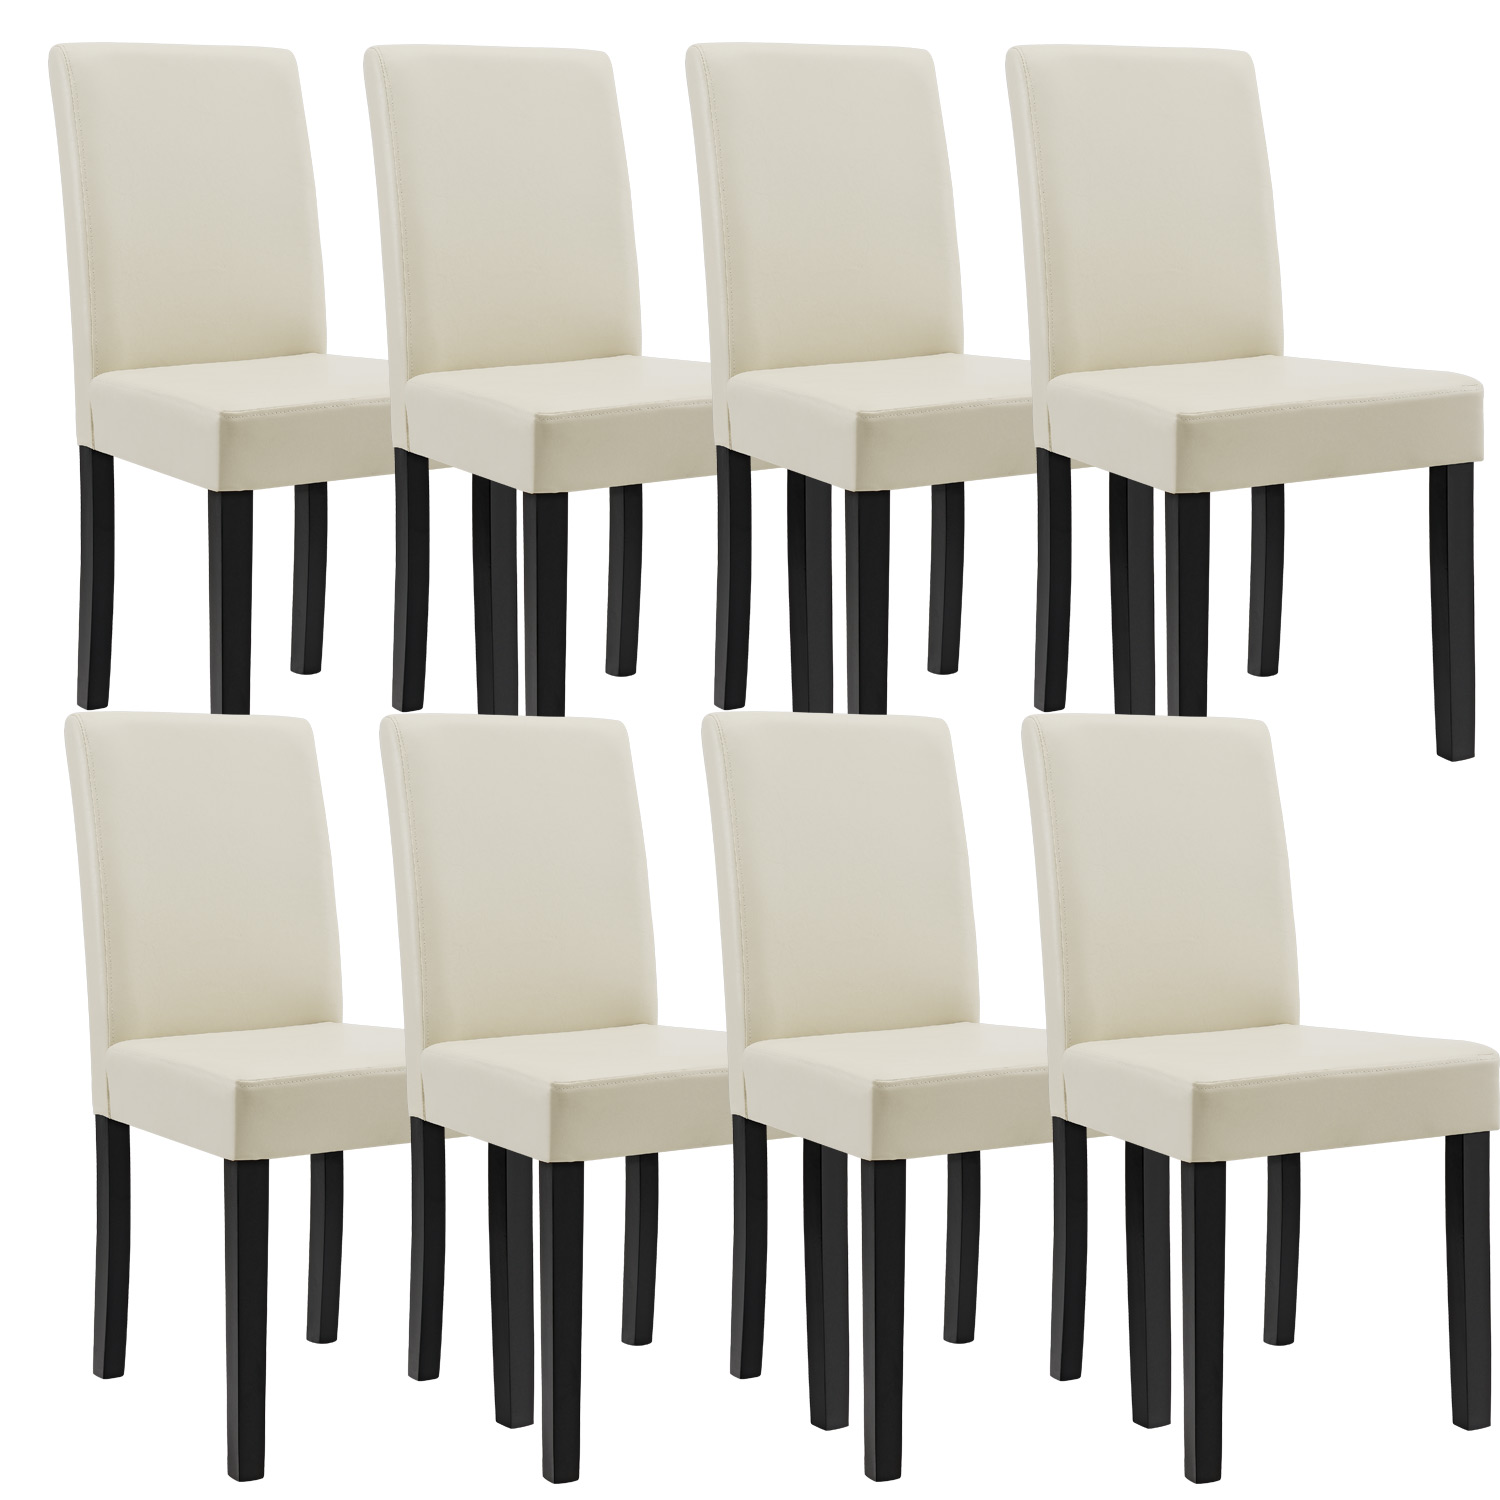 8x st hle hochlehner esszimmer st hle creme kunst leder polster stuhl ebay. Black Bedroom Furniture Sets. Home Design Ideas